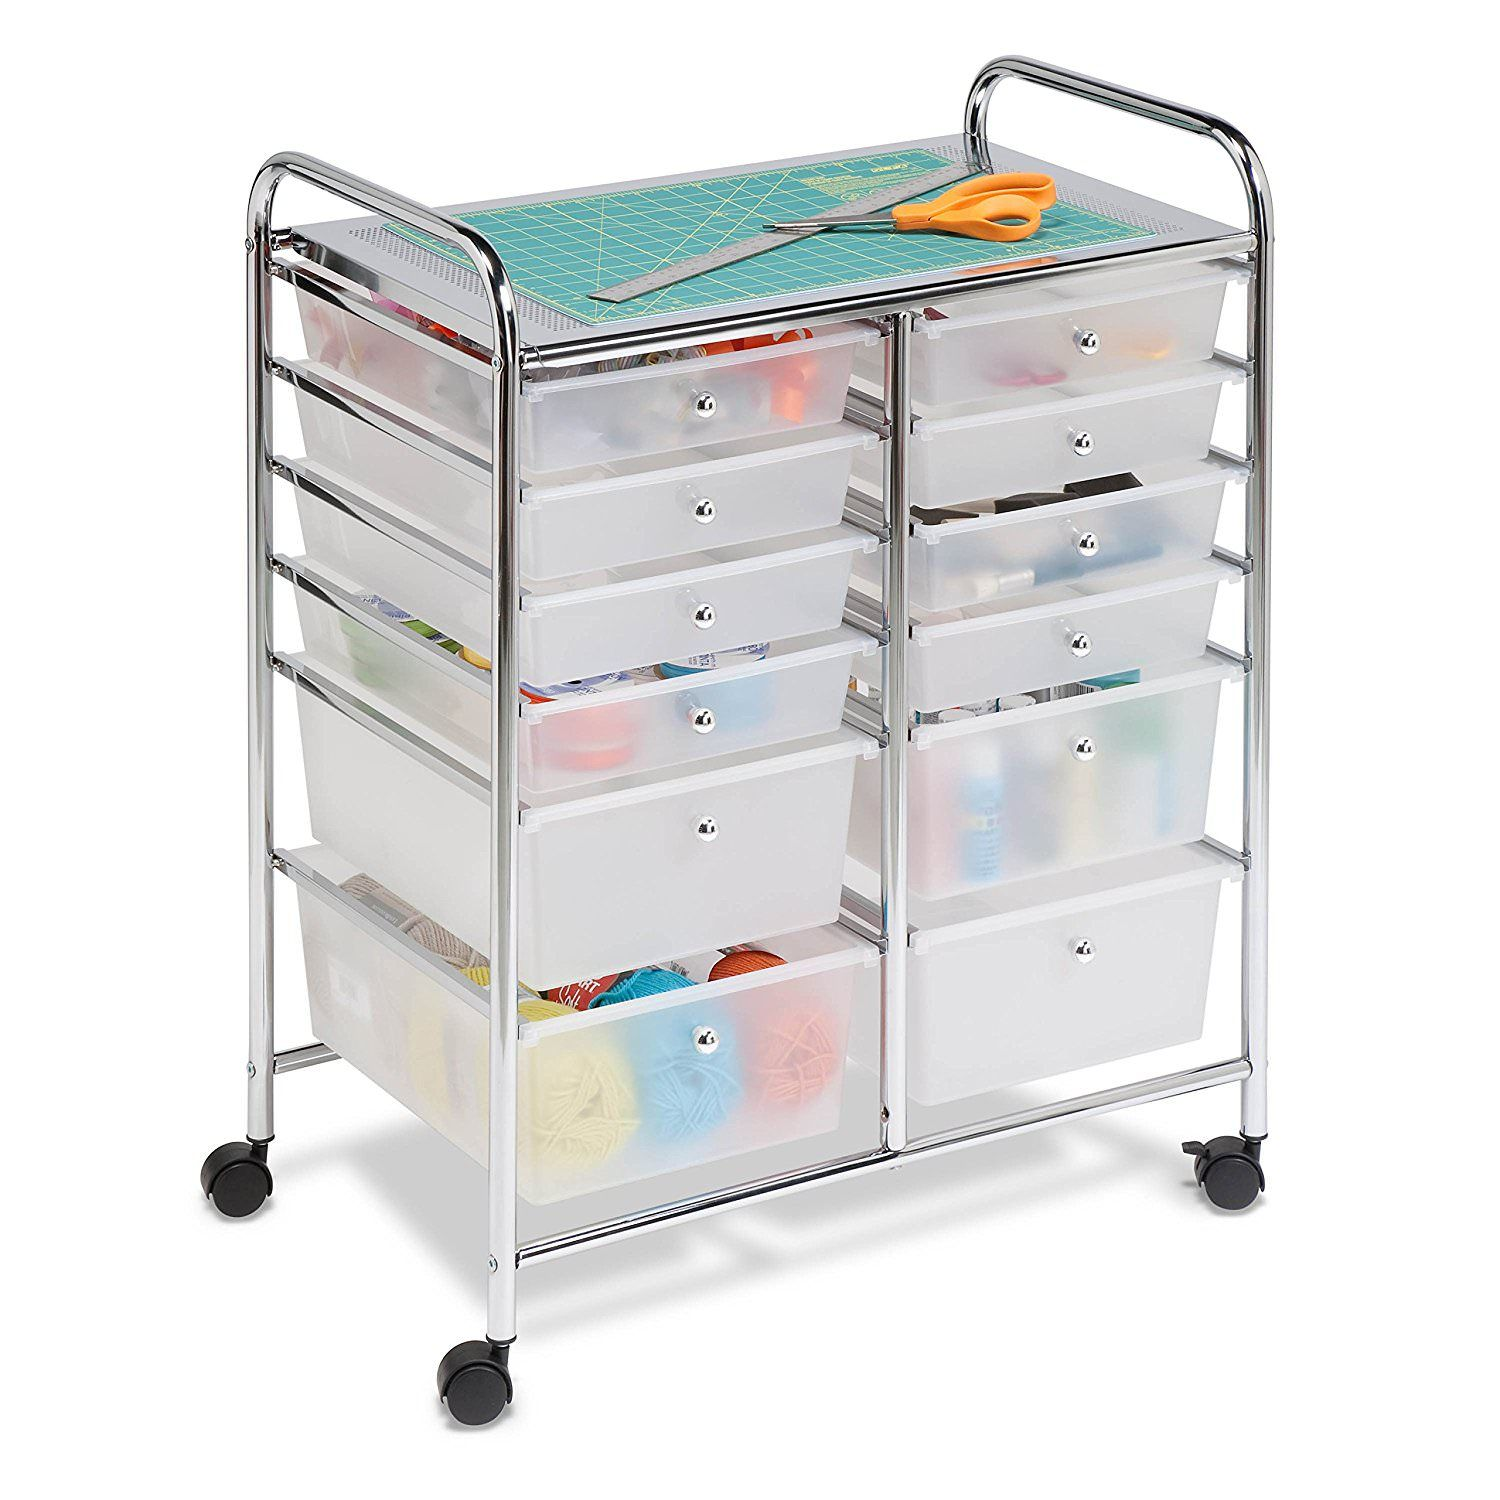 Free 2 Day Shipping Buy Honey Can Do Rolling Storage Cart And